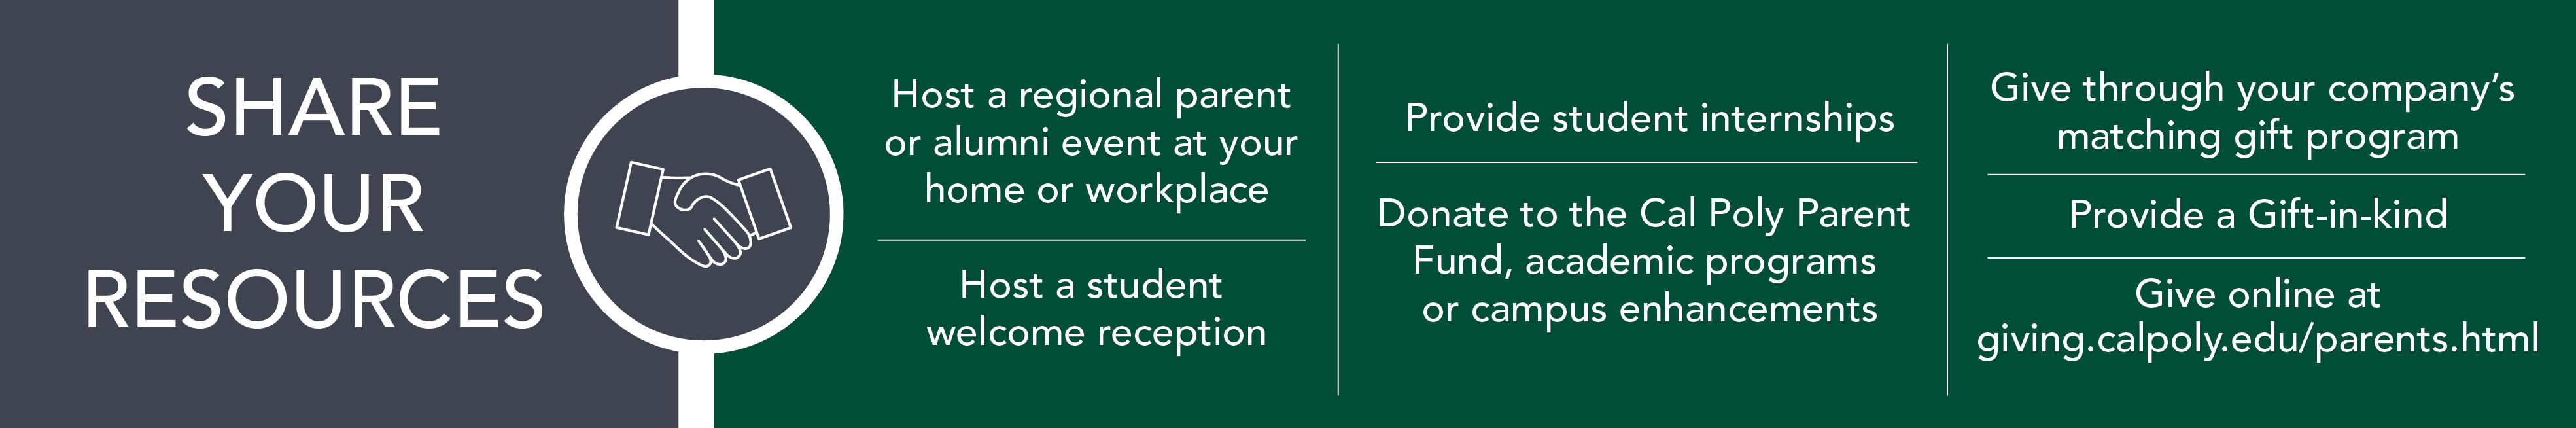 Stay Involved Parent And Family Programs Cal Poly San Luis Obispo Electrical Engineering 4 Year Plan Uc Davis Learn About The Many Ways You Can Give Back To Below Complete Our Volunteer Form Get Started Today